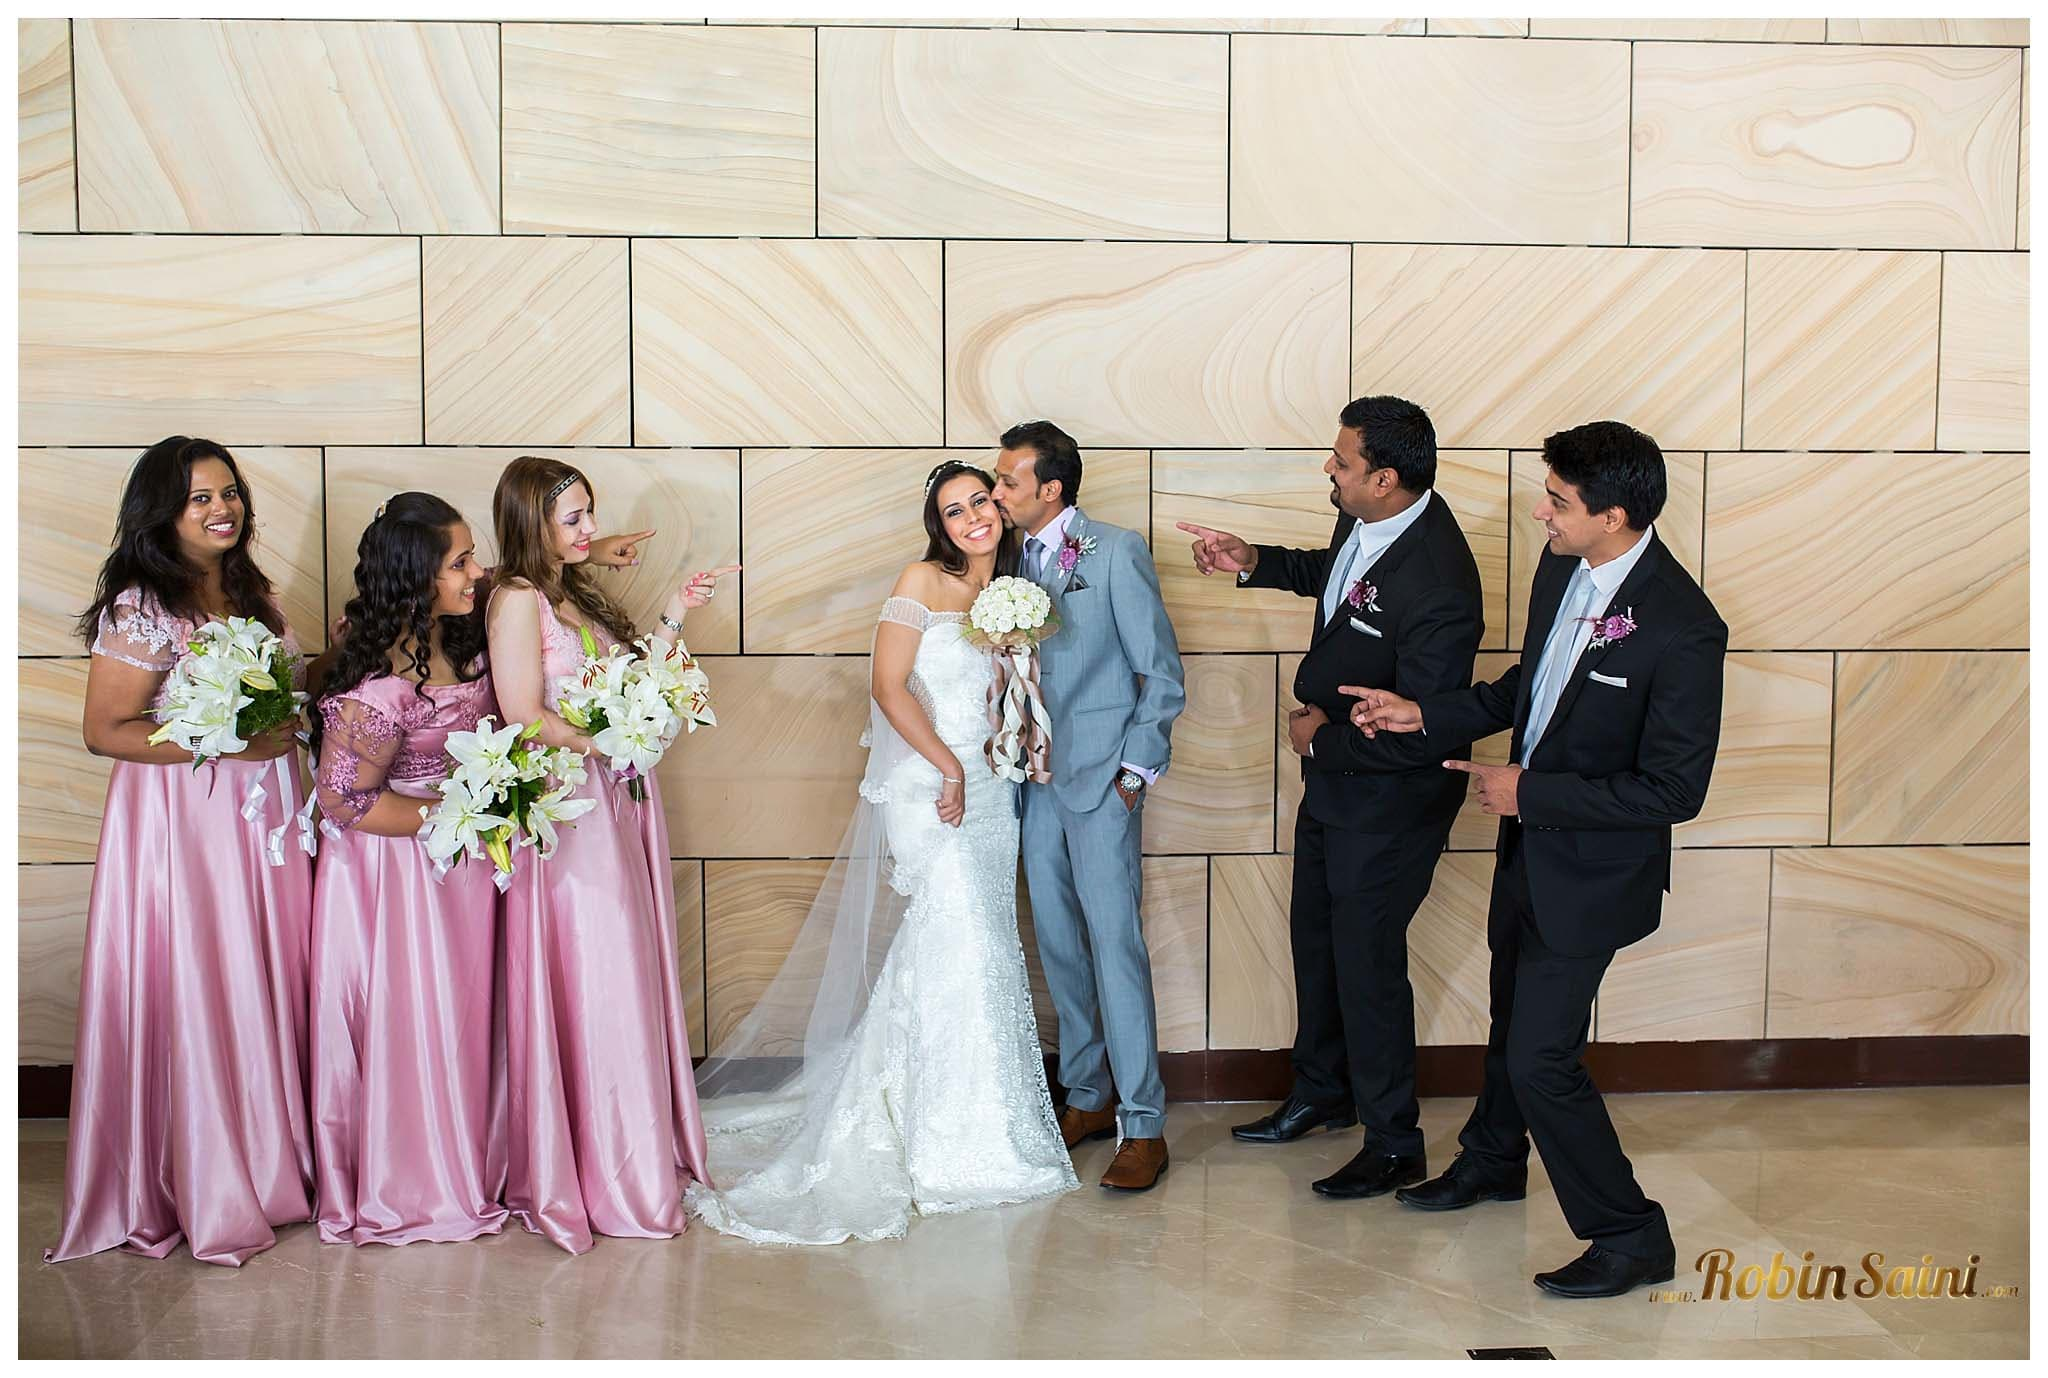 groom kissing bride:robin saini photography